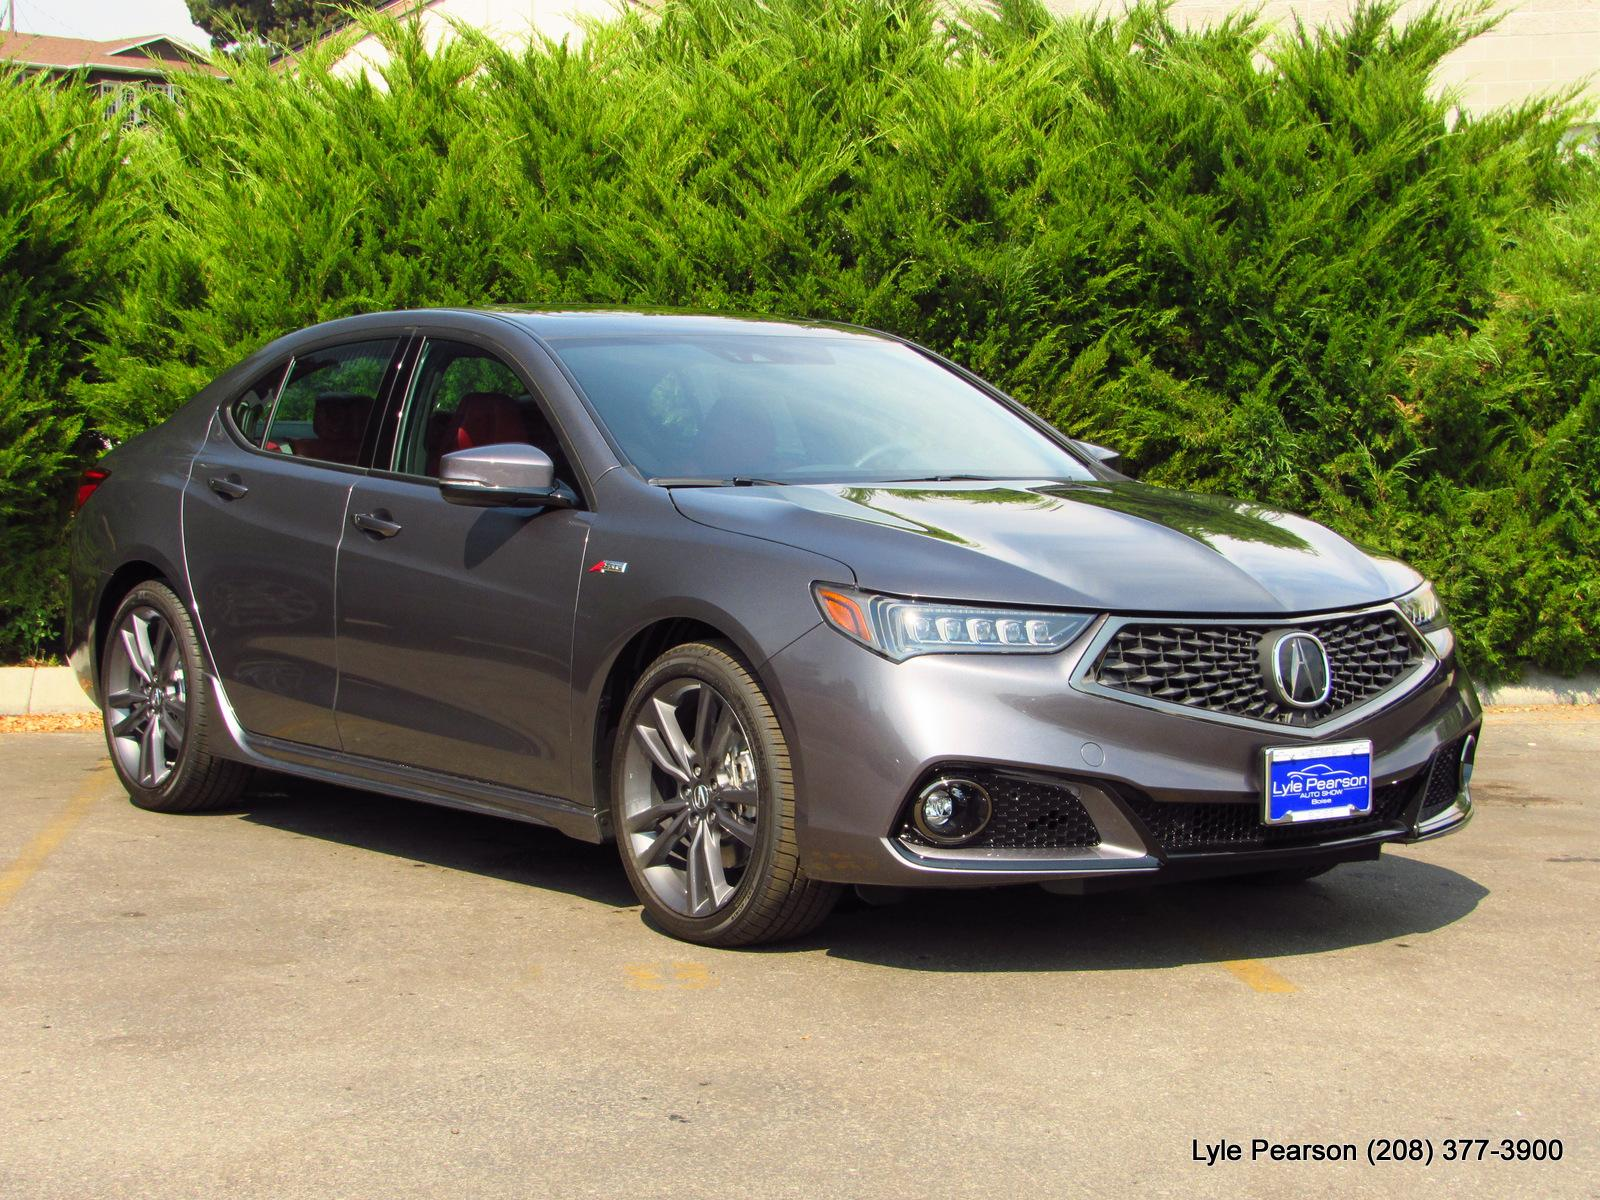 New 2019 Acura TLX 3 5 V 6 9 AT SH AWD with A SPEC RED 4dr Car in